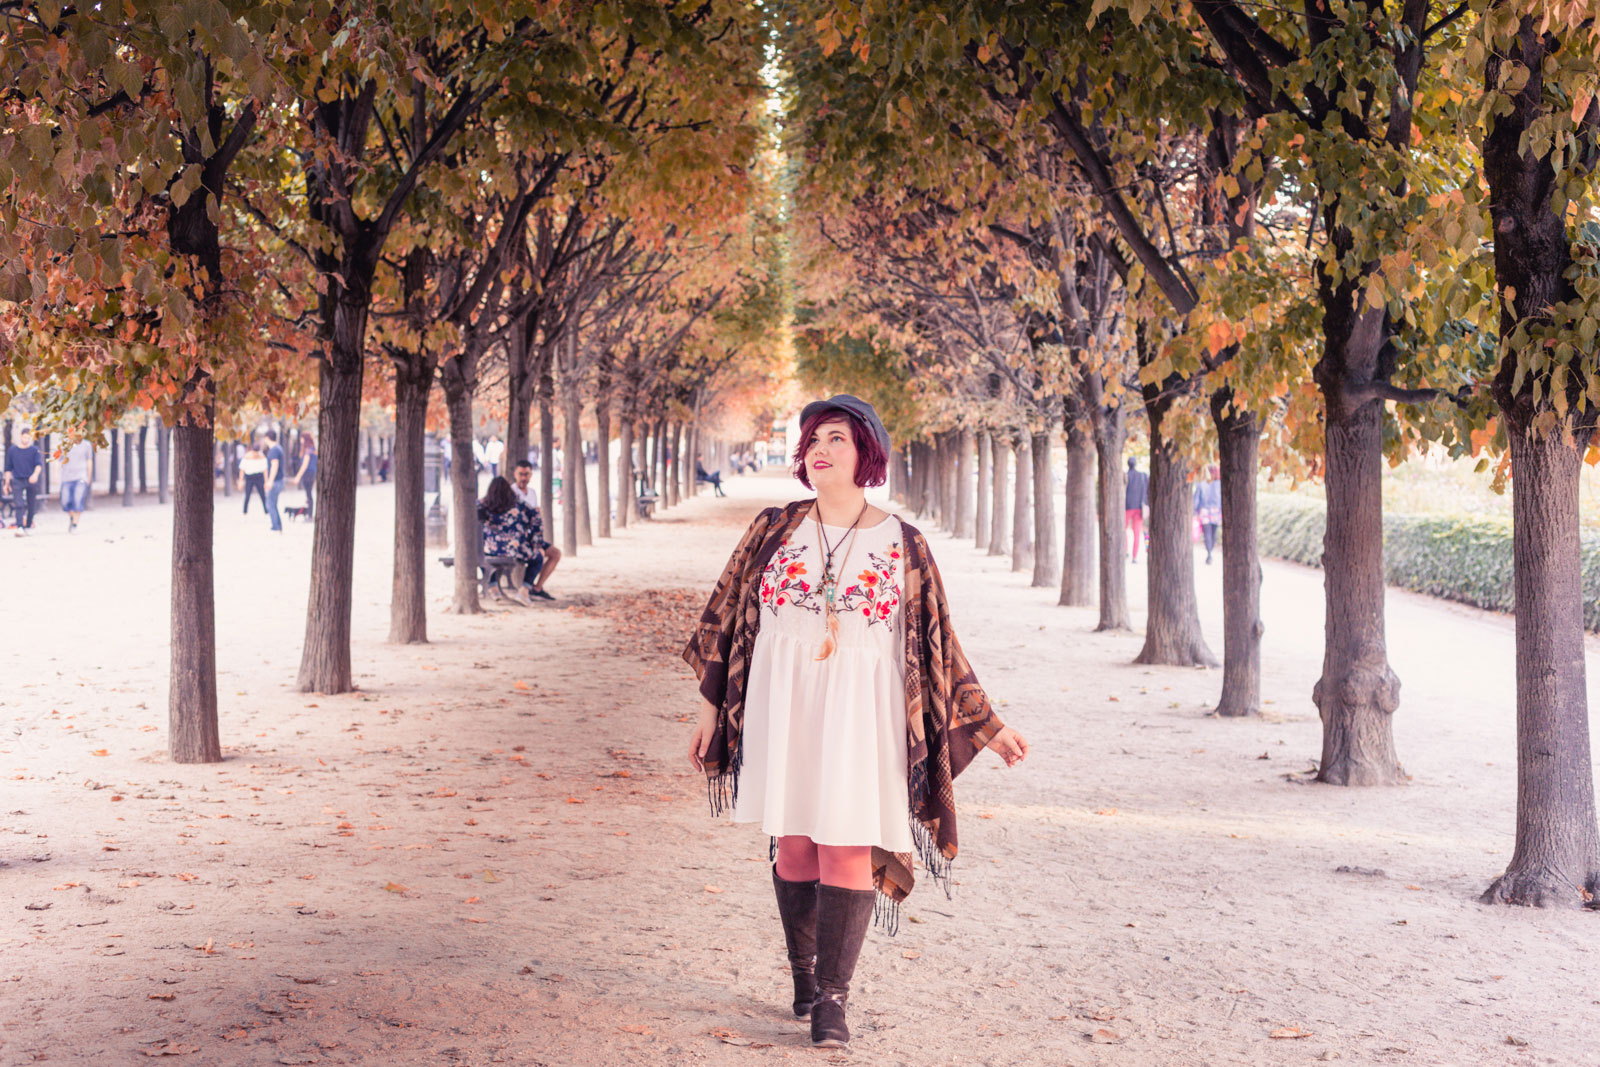 ninaah bulles, shein, grande taille, plus size, folk, romantique, outfit, blog grande taille, blogeuse grande taille, automne, look d'automne, bottes mollet larges